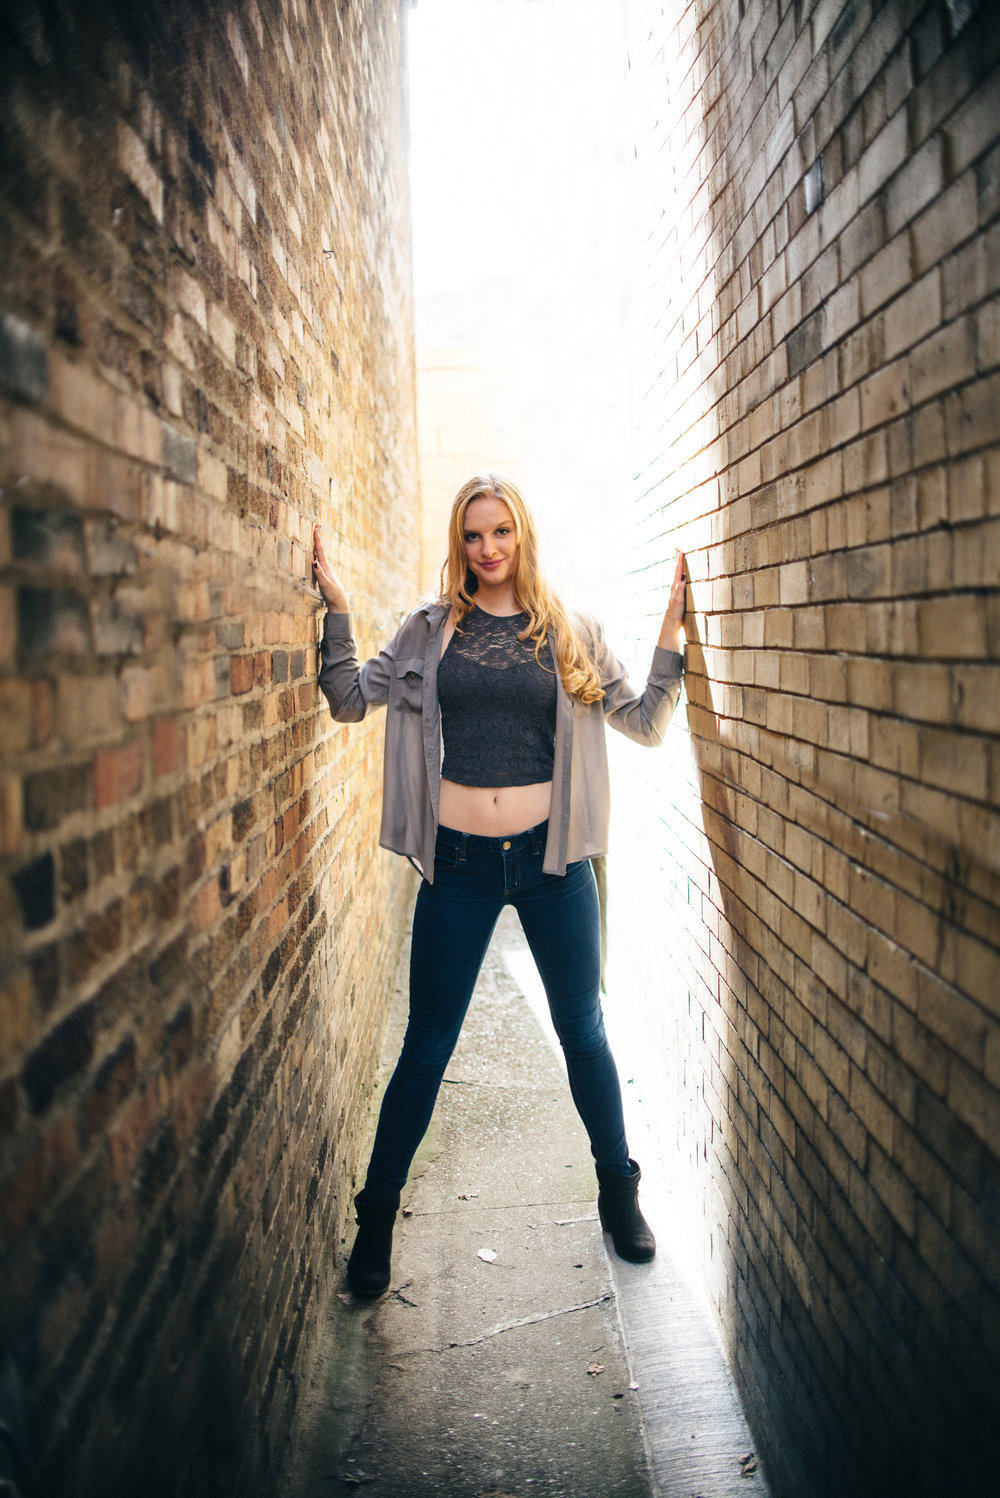 Blonde high school senior model with skinny jeans and gray crop top in urban setting between two brick buildings